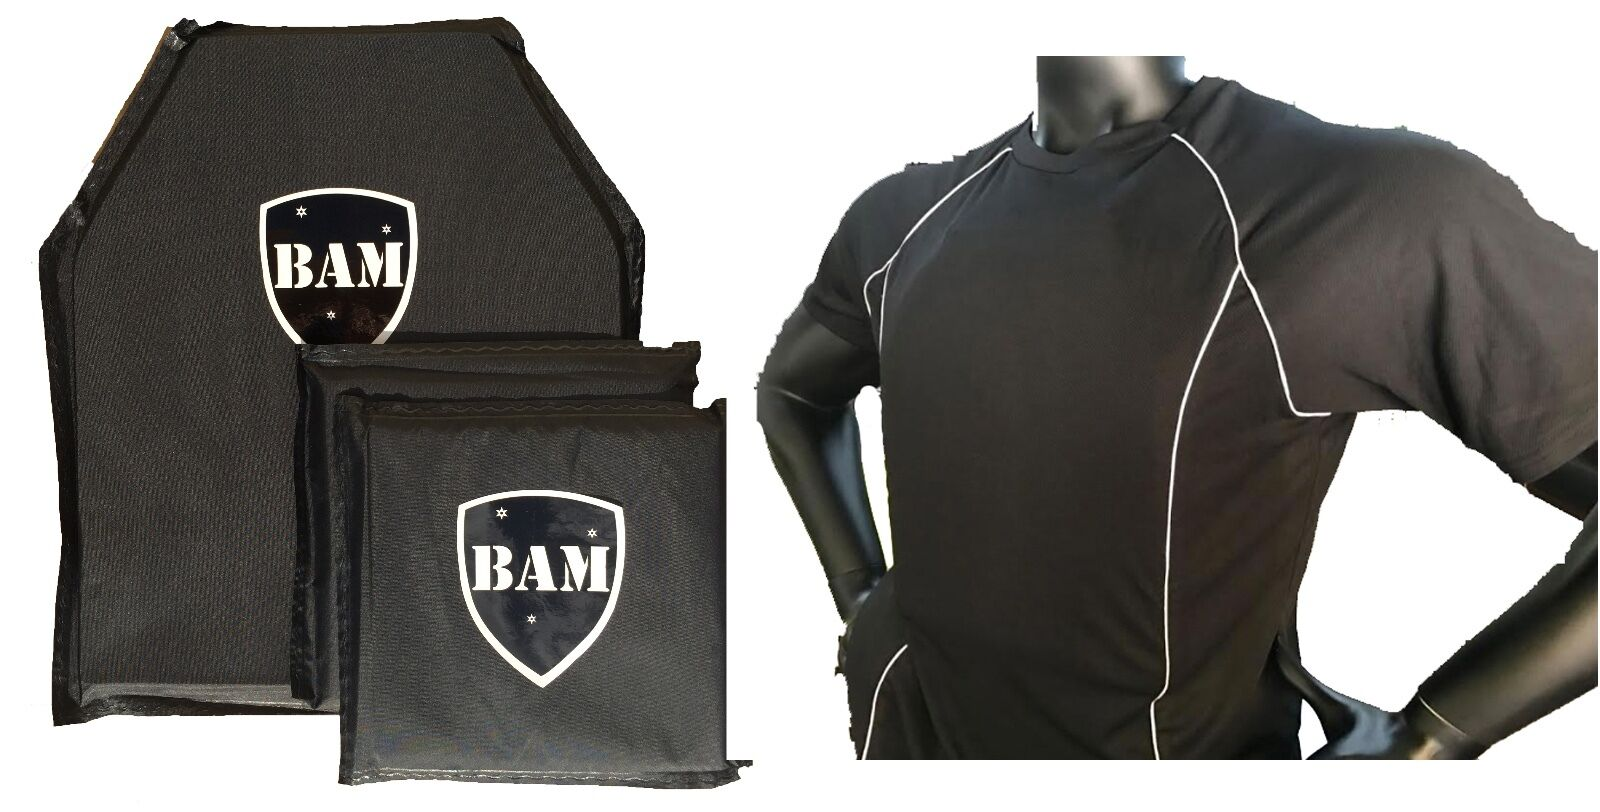 Body Armor   Bullet Proof Shirt   Level IIIA 3A   Low Profile    Mfg MAY 2018